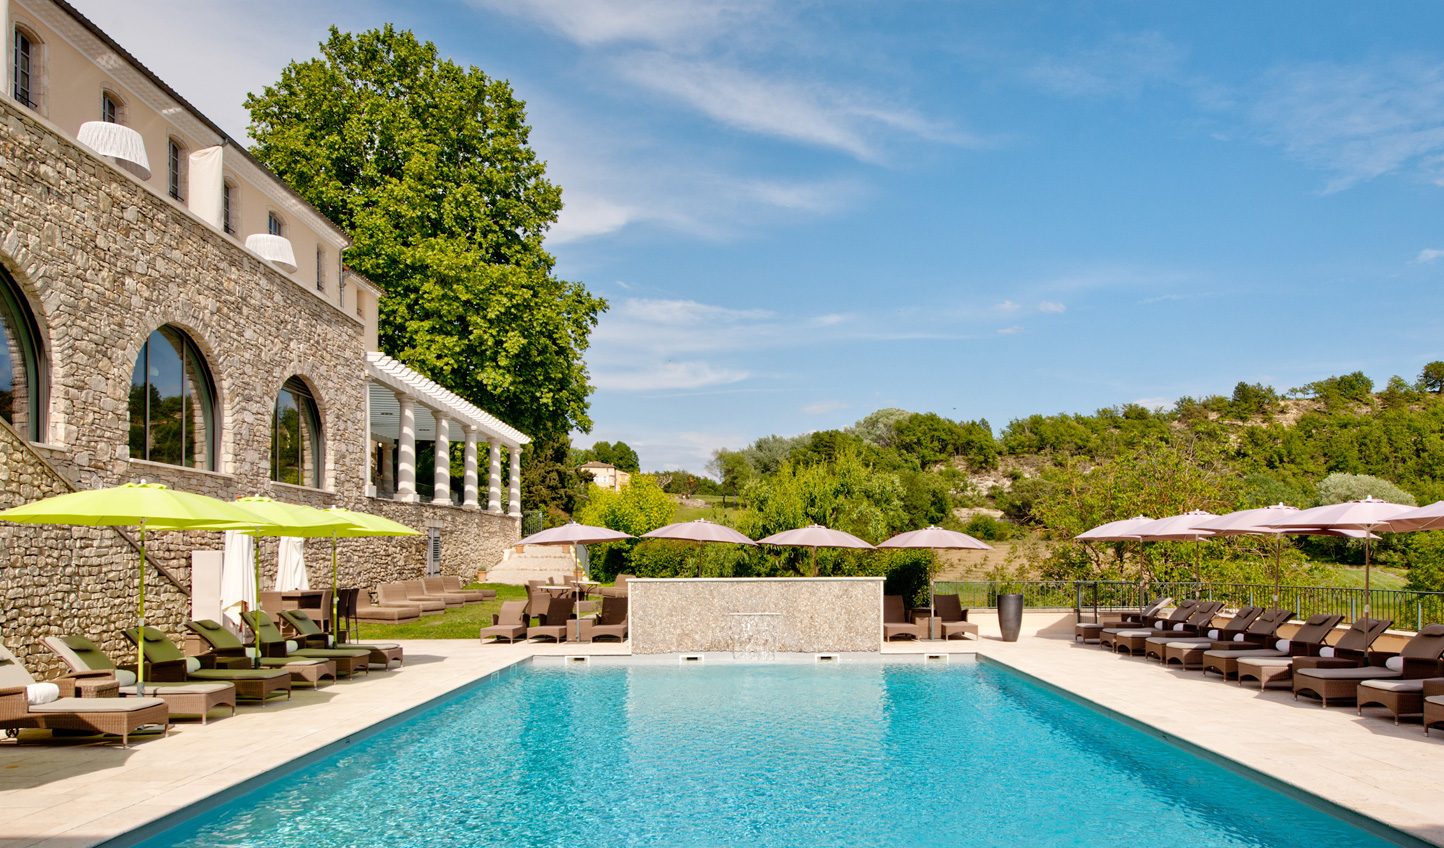 Soak up the summer sun in Provence at Couvent des Minimes